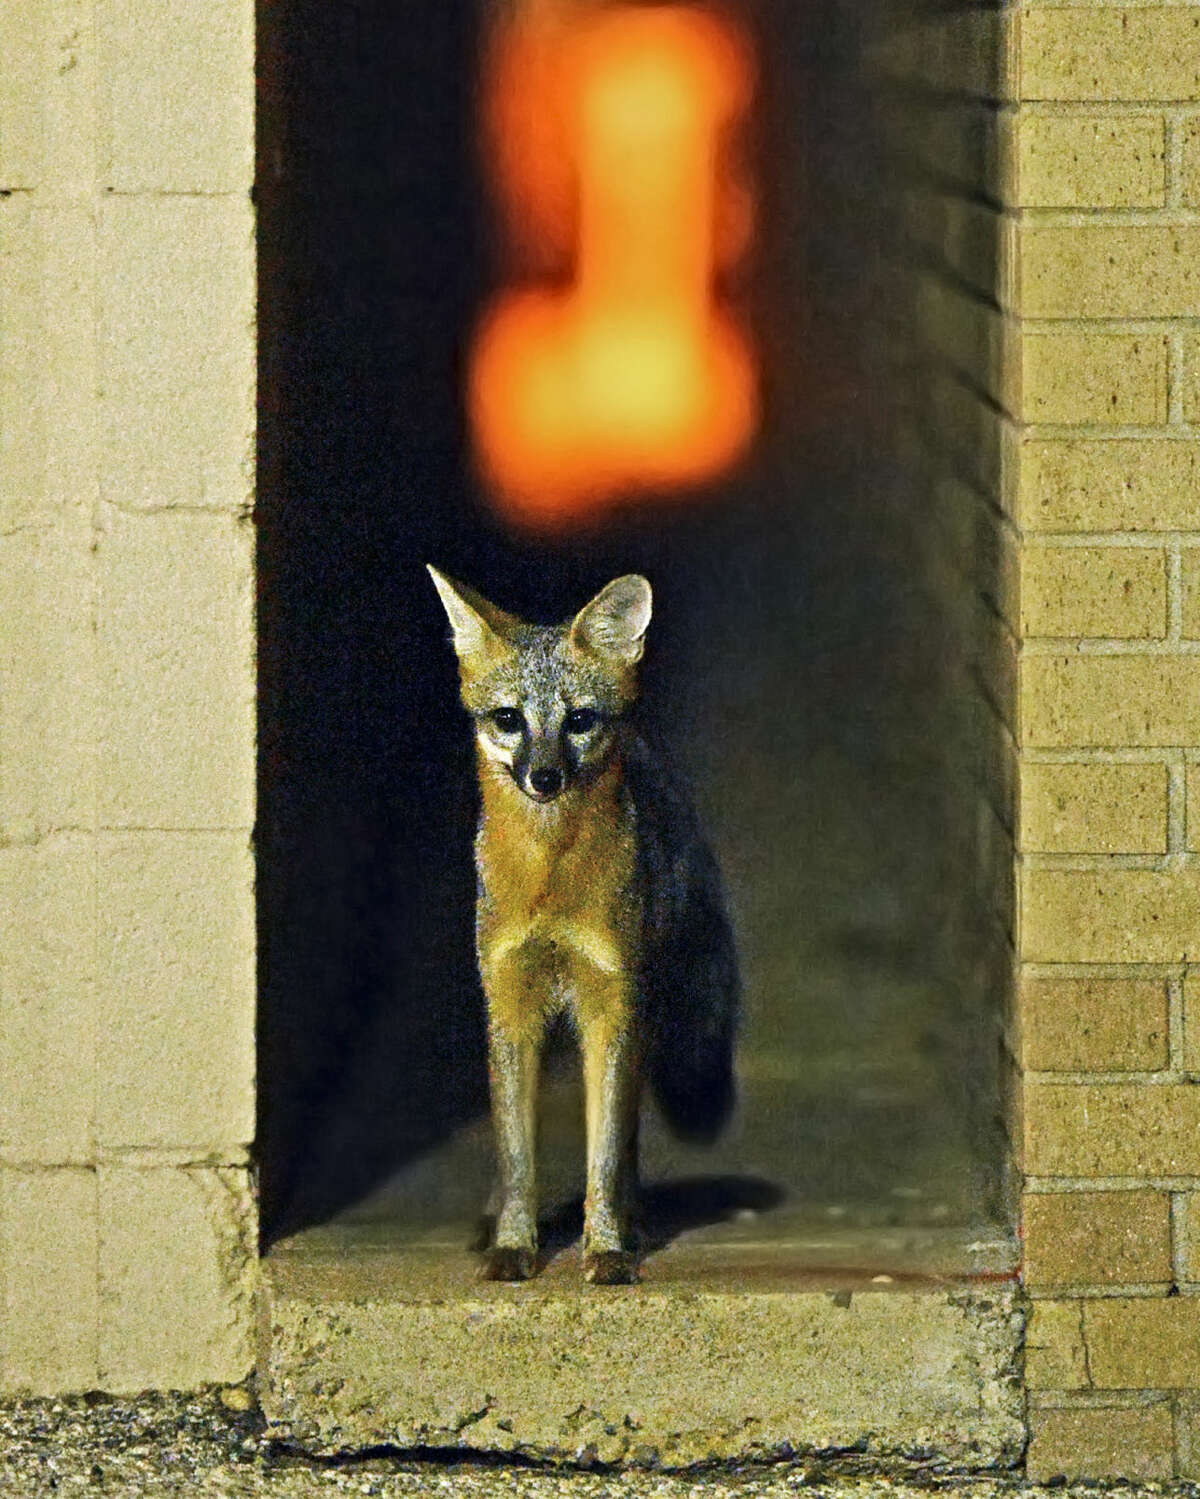 A fox peeks out of an alley separating the Navigator Oil and Minerals and the RK Petroleum buildings located on Main Street near downtown Midland the night of Tuesday, Oct. 6, 2015. James Durbin/Reporter-Telegram